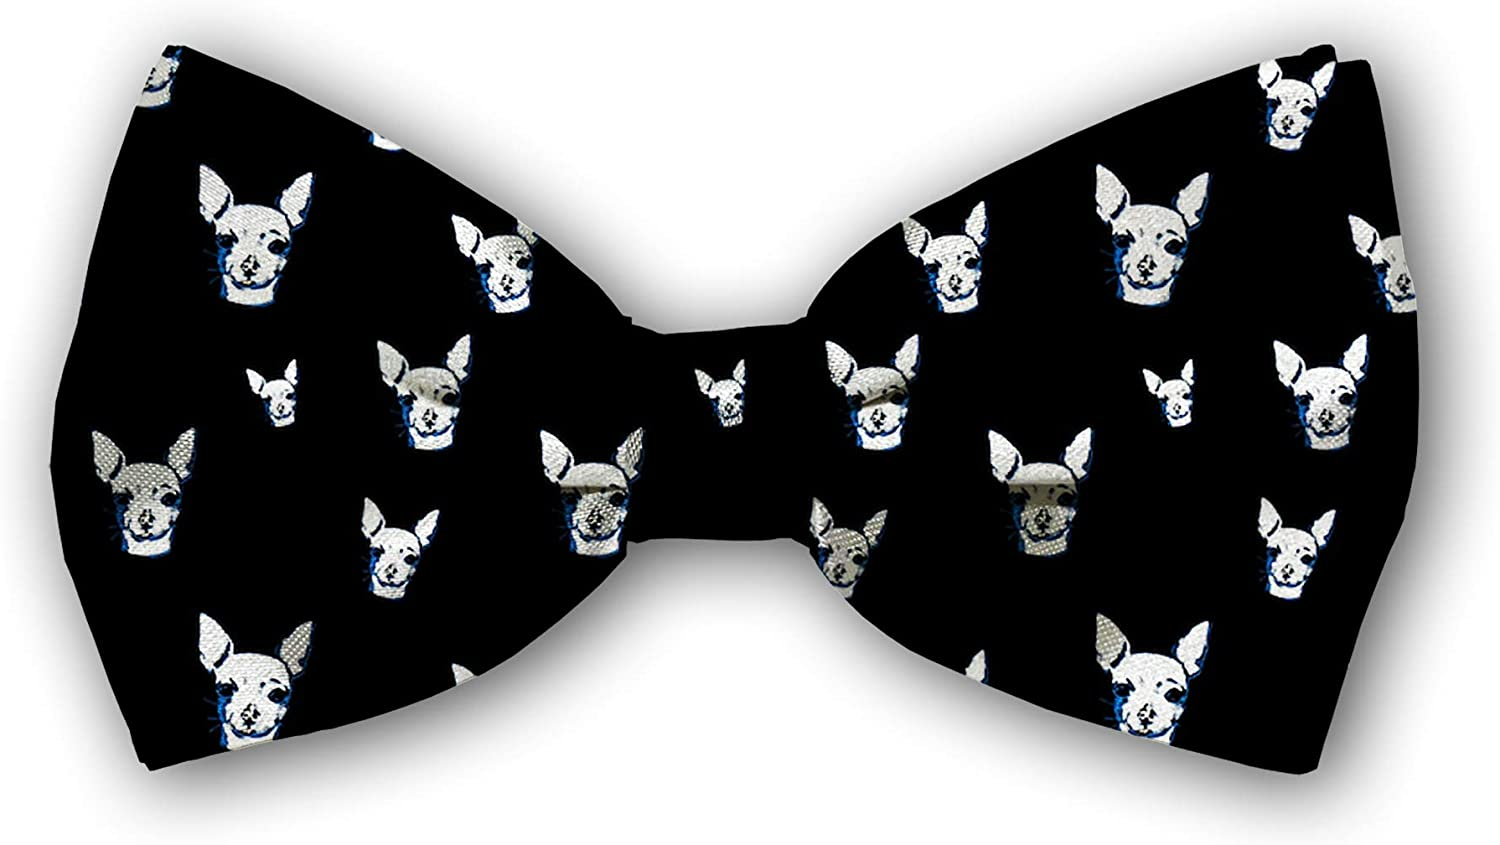 Bow Tie Tuxedo Butterfly Cotton Adjustable Free shipping Bowtie Mens for Boys Limited time sale